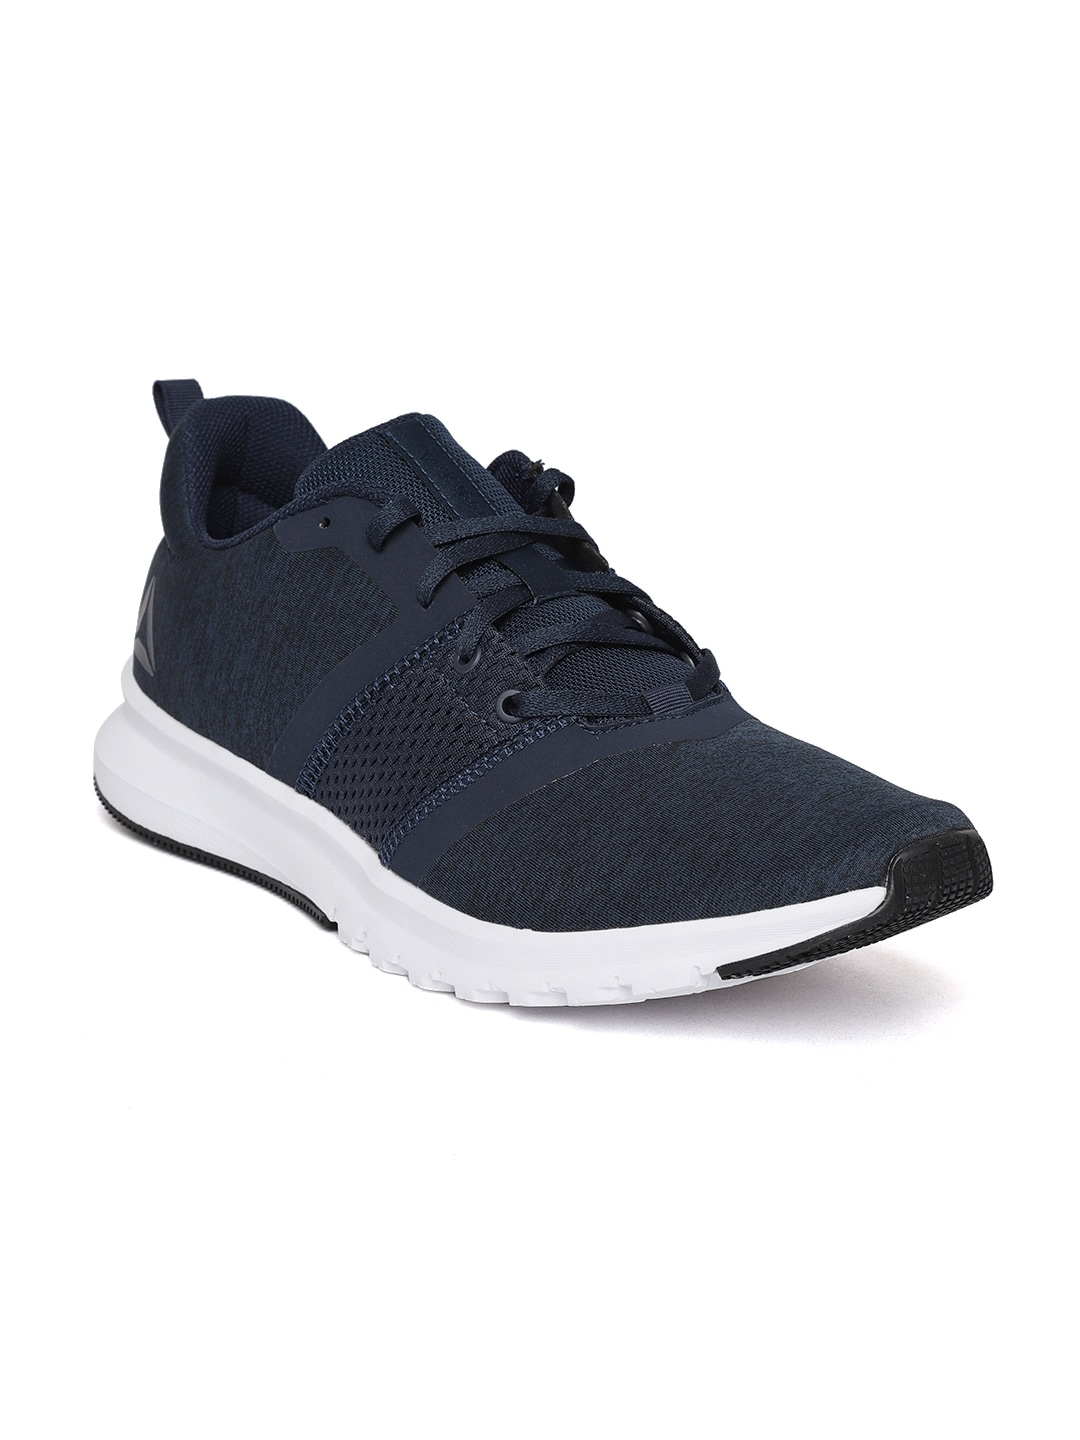 Shoes for Men - Buy Mens Shoes Online at Best Price  cbcc20b6e